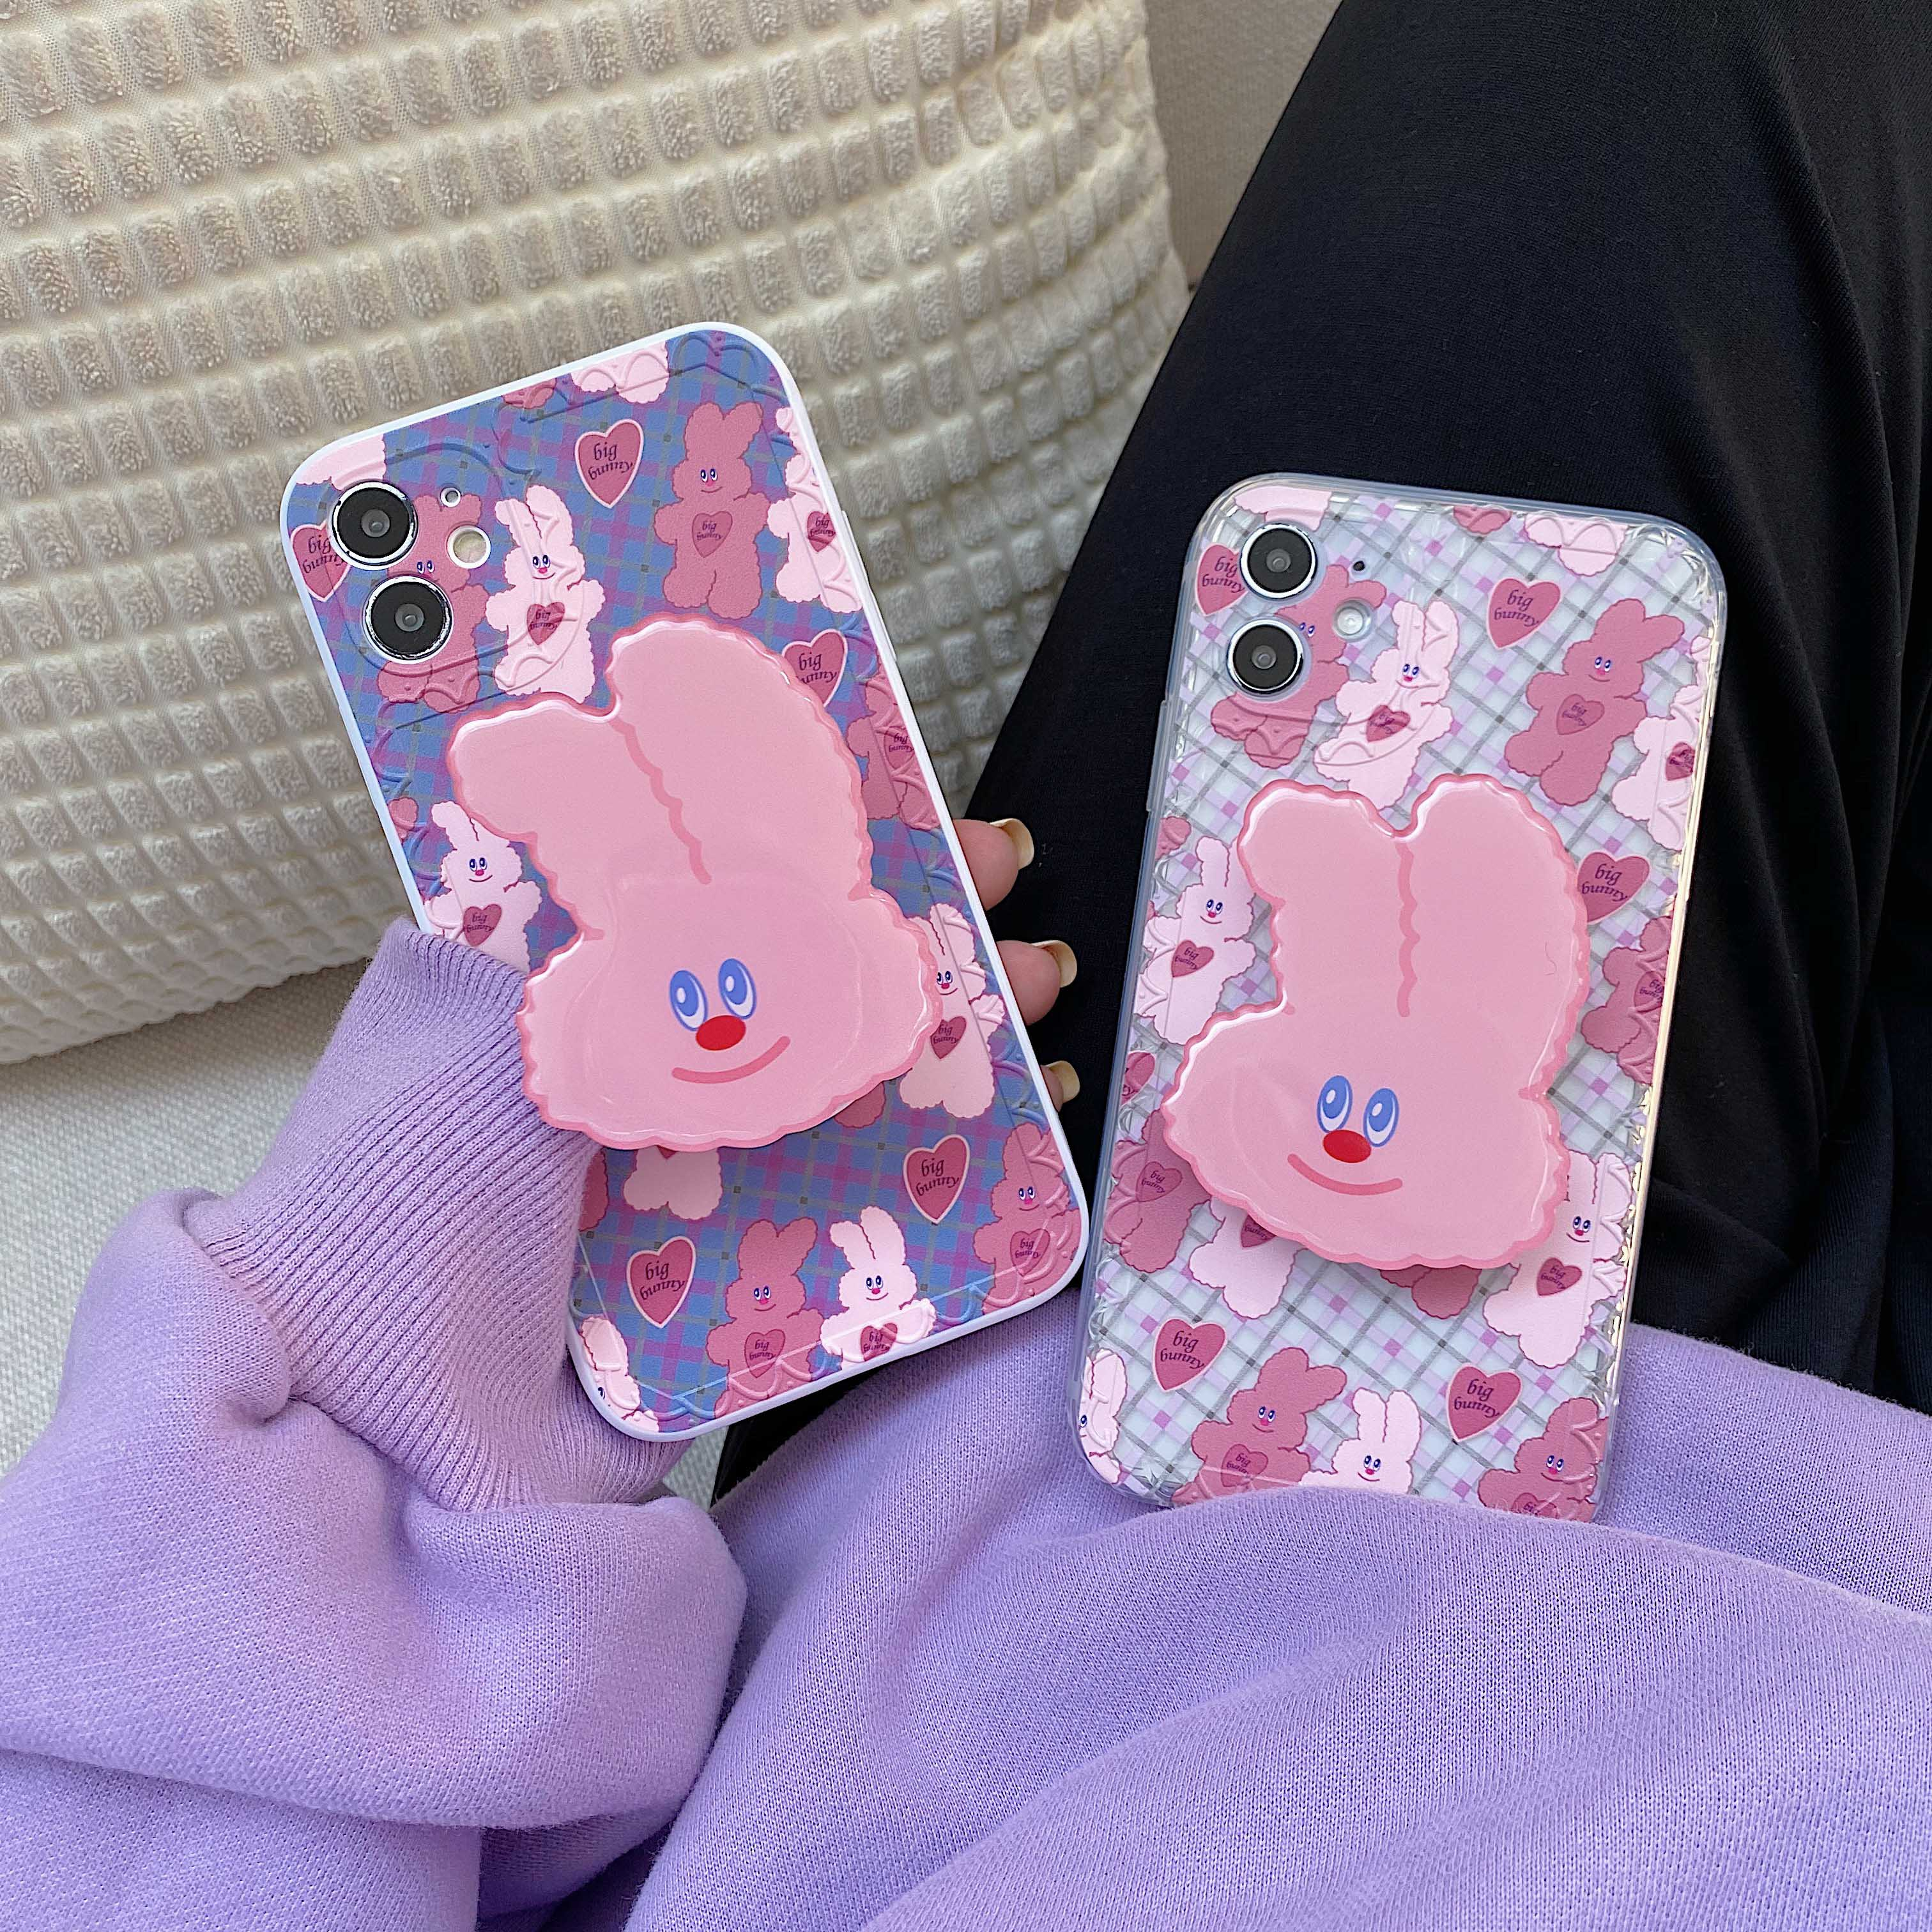 3D Cute Pink Rabbit Stand Holder Phone Case For Iphone 11 12 Mini Pro Max XR XS MAX X 7 8 Plus Korea Ins Case Soft Silicon Cover